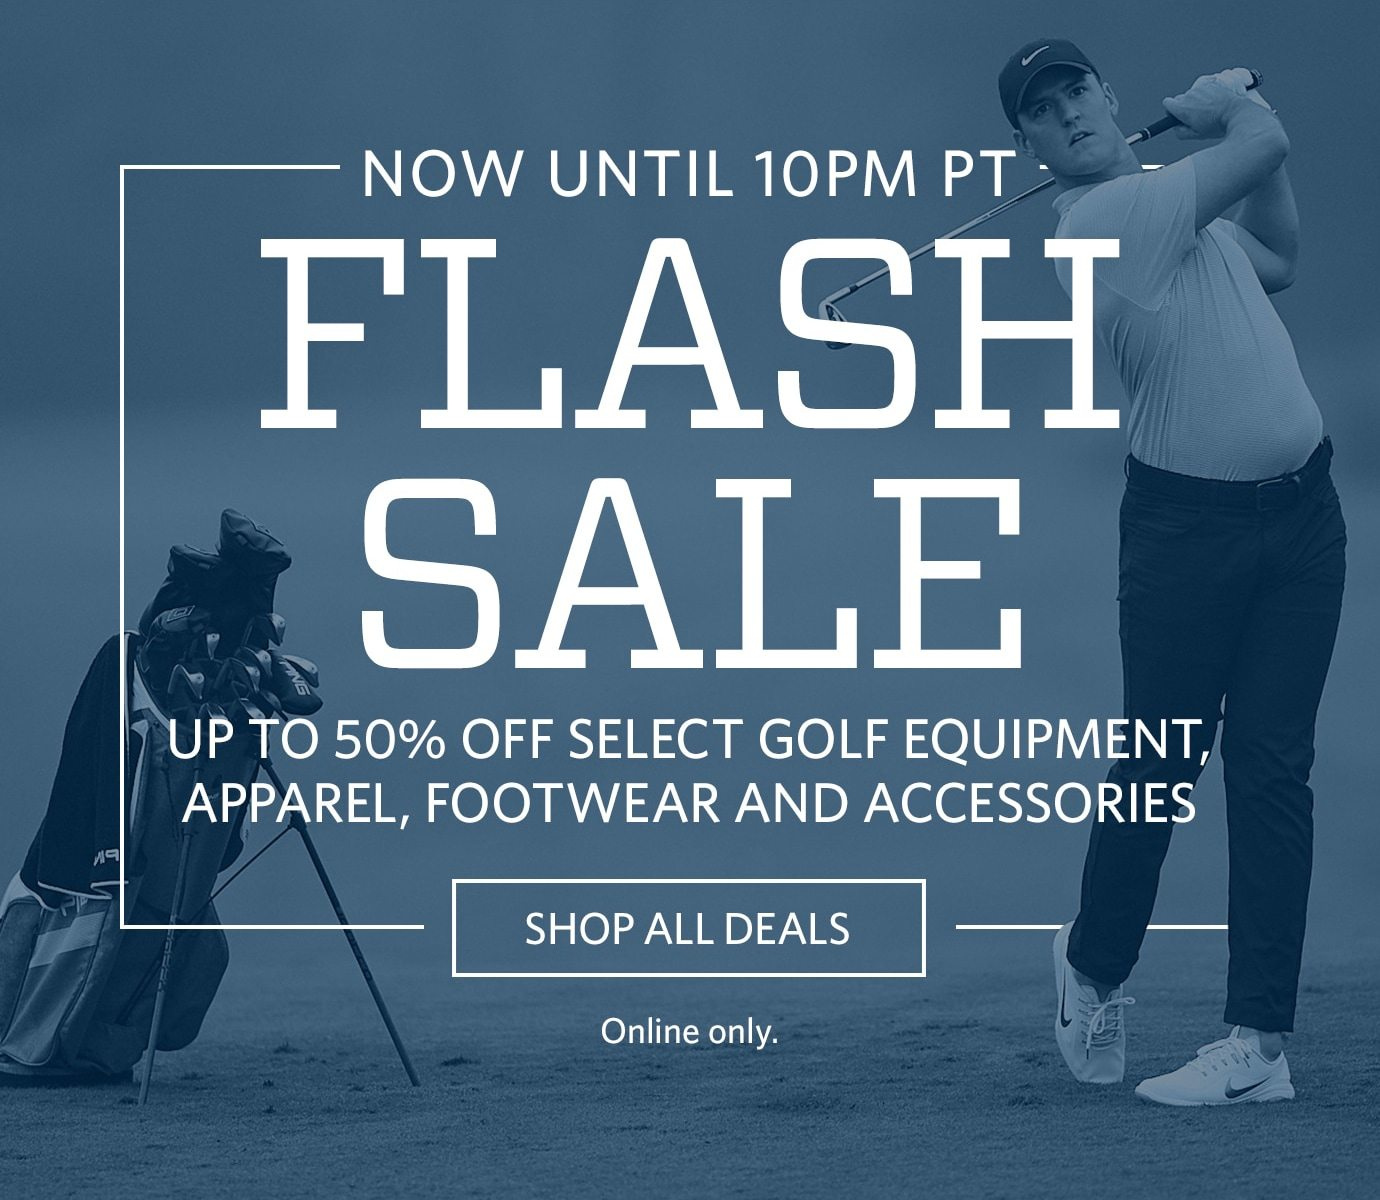 Now Until 10PM PT | Flash Sale | Up To 50% Off Select Golf Equipment, Apparel, Footwear, and Accessories | SHOP ALL DEALS | Online Only.